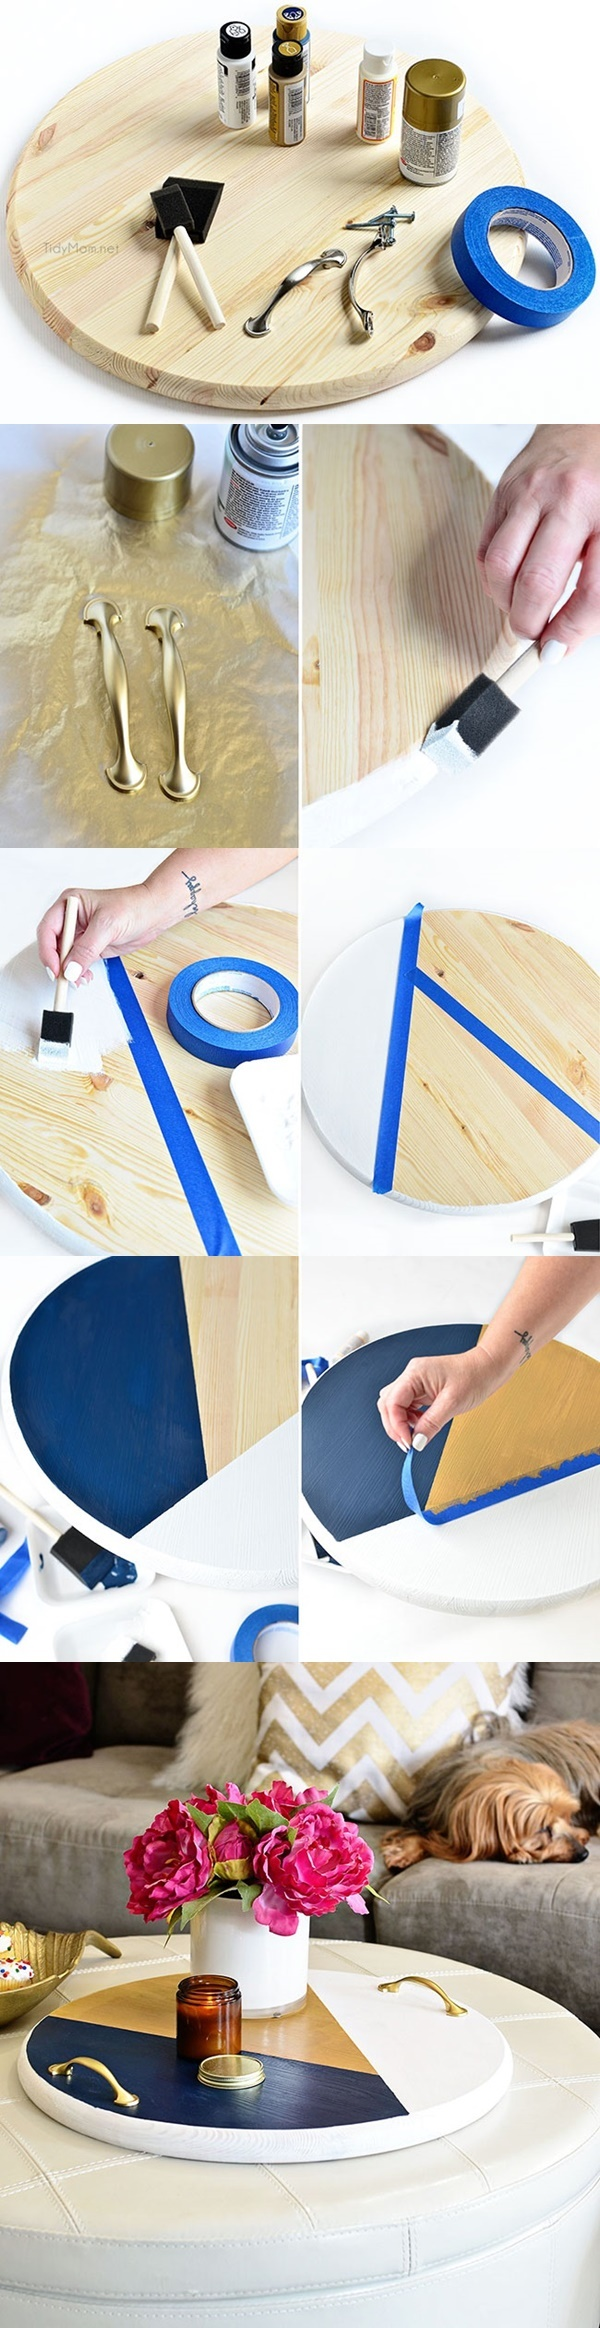 DIY-Tray-Decoration-Ideas